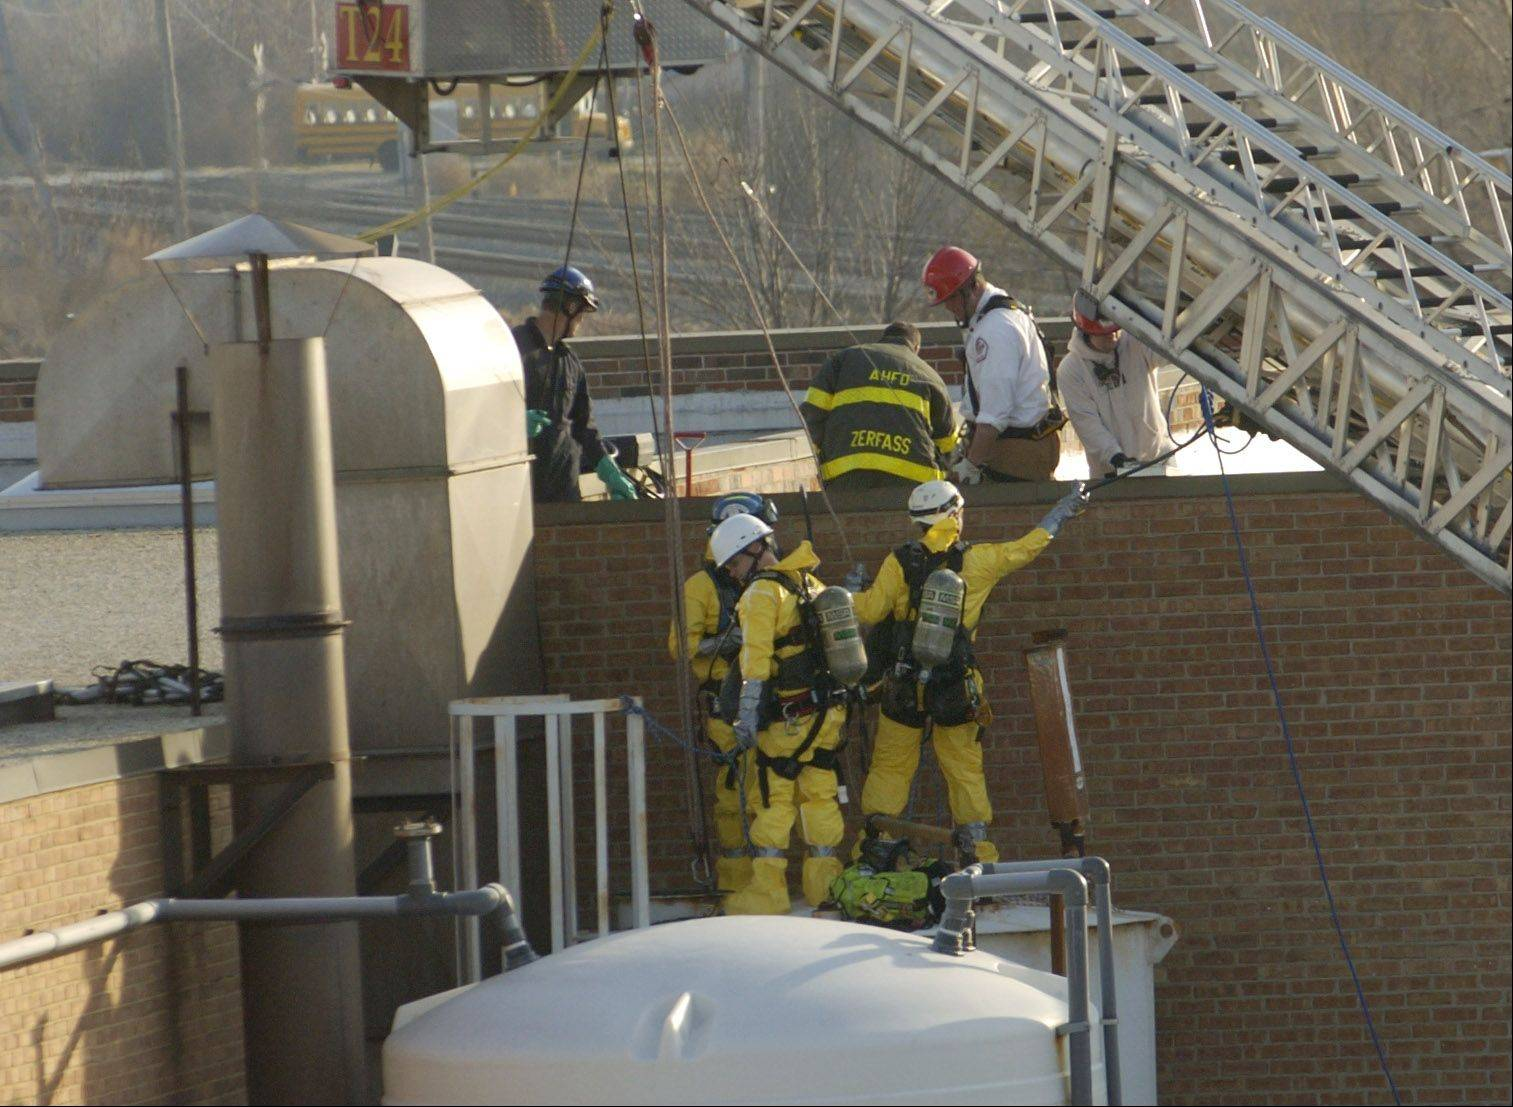 Rescue workers attempt to remove the body of a man who died in a chemical tank Thursday at a business in Wheeling.